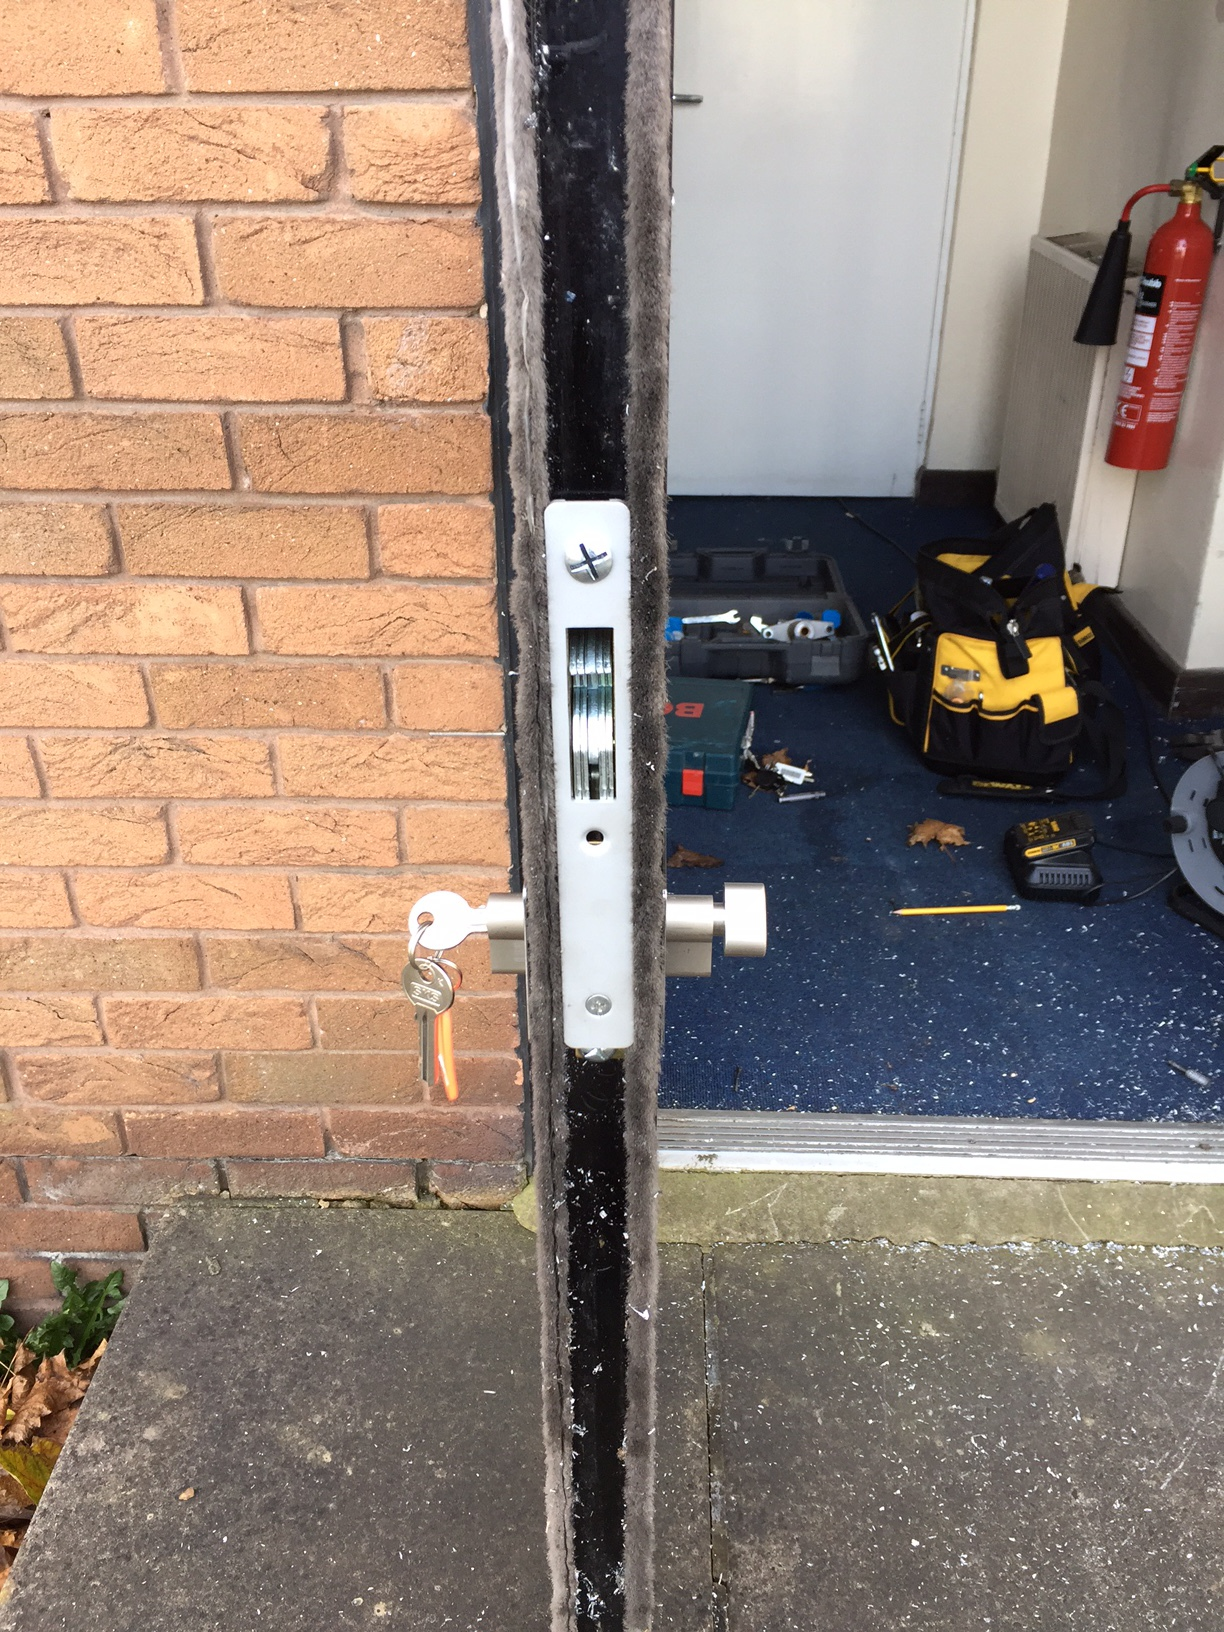 Locksmiths Barton upon humber Fire exit Secured